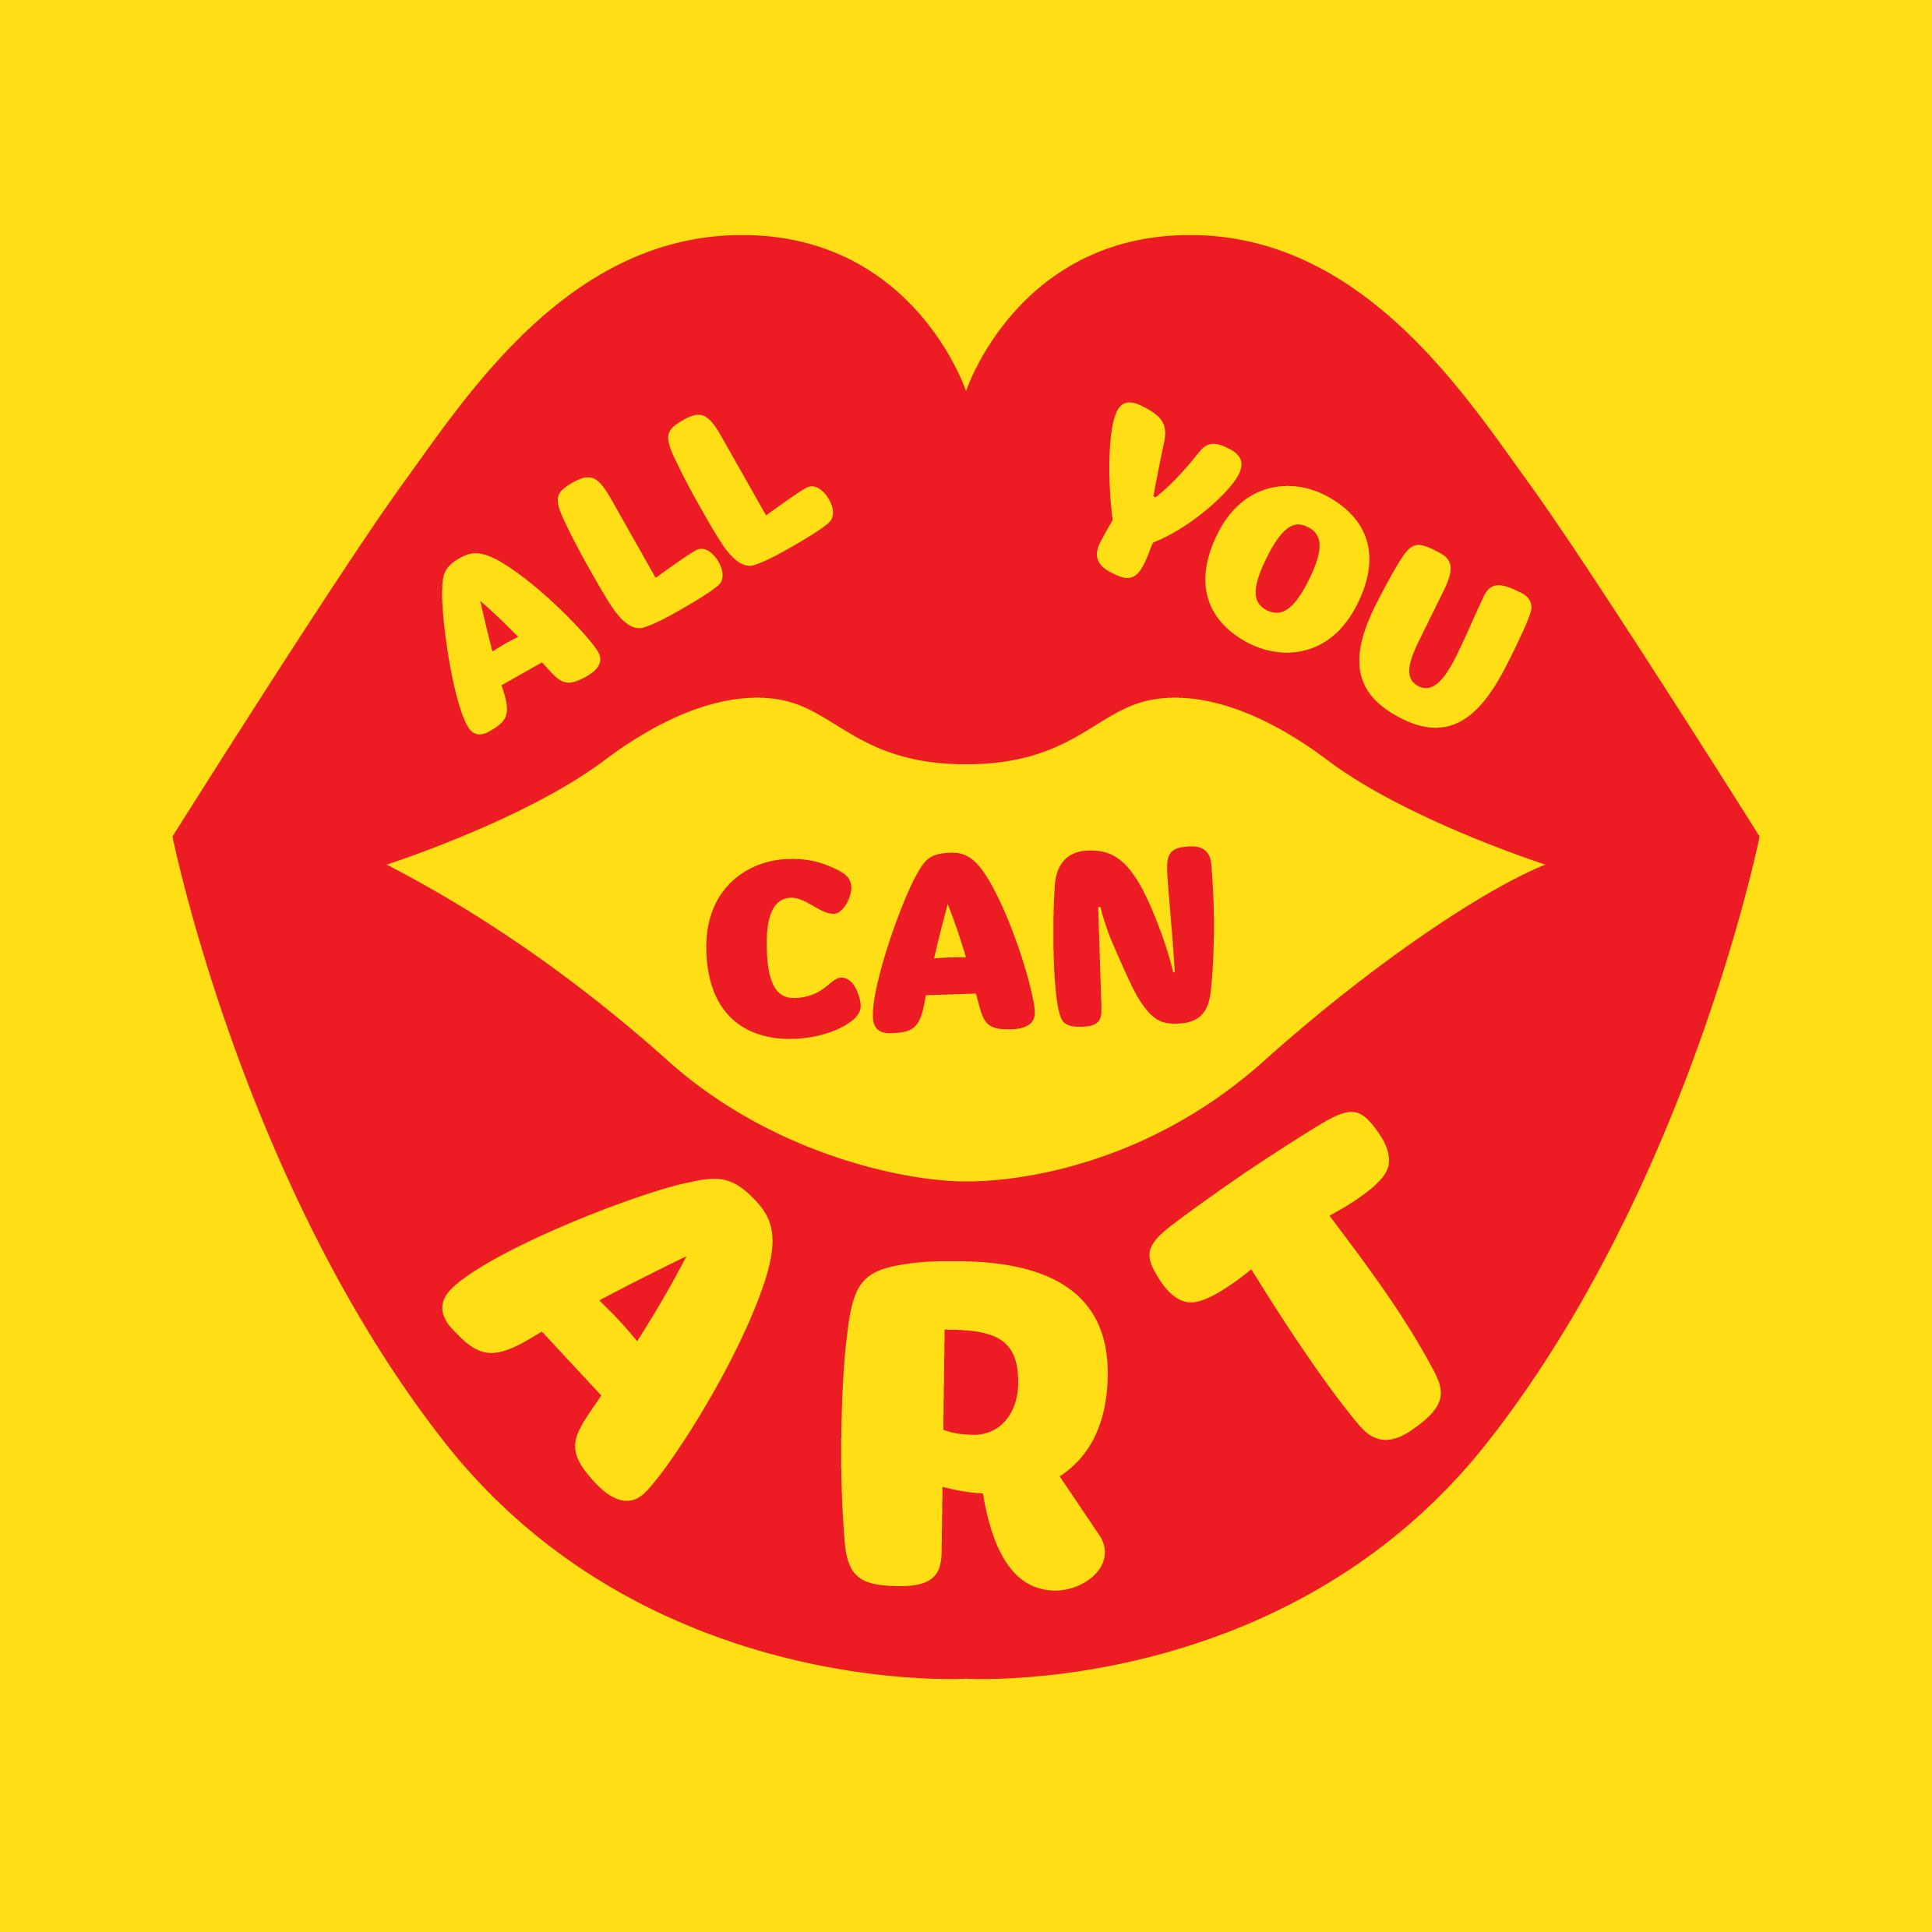 11 - All you can Art, Kunsthal Rotterdam.jpg